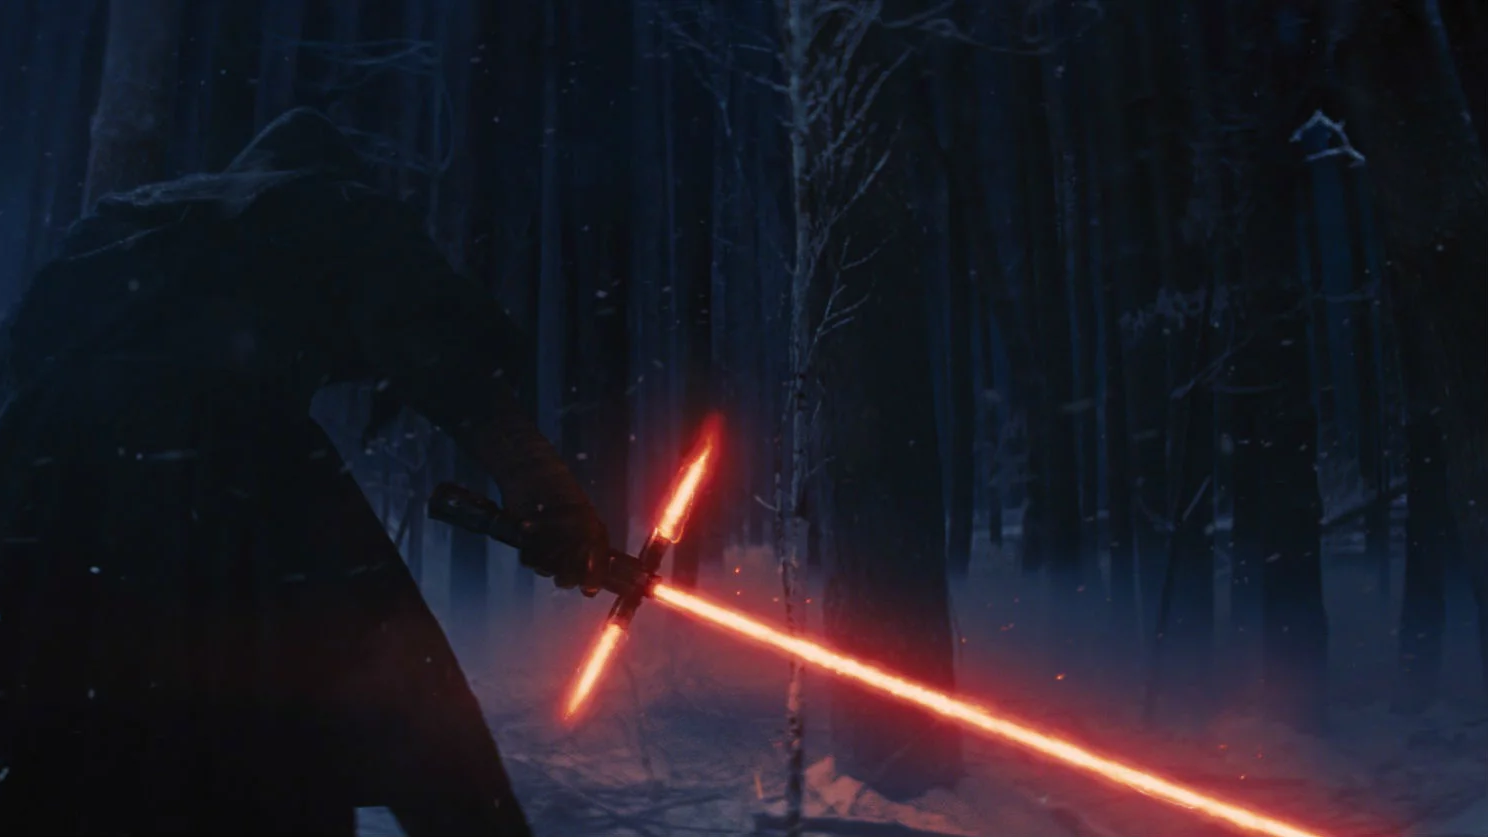 This Fan Film Introduces The Star Wars Universe's Only Artisanal Lightsaber Maker